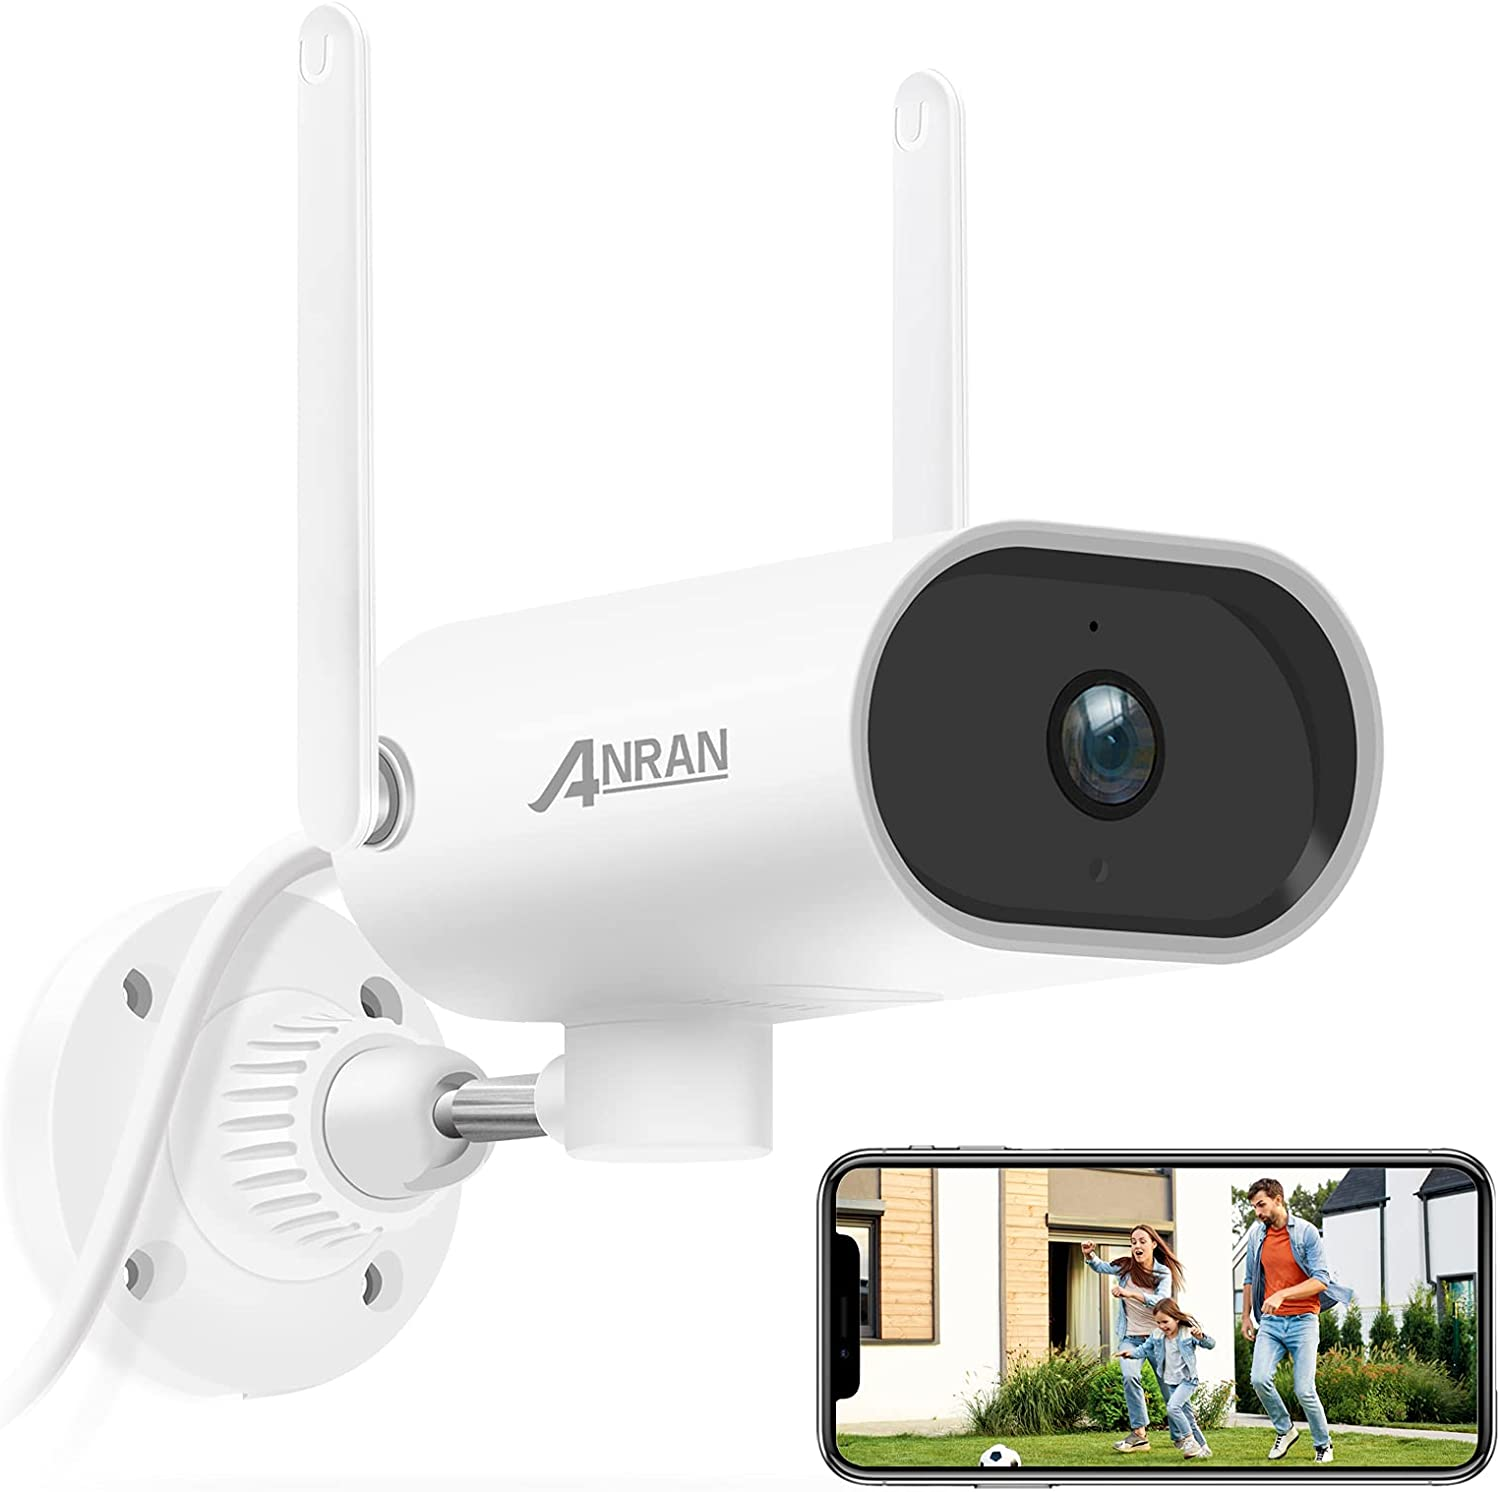 【Pan Rotating 180°】Outdoor Security Camera 1080P, ANRAN WiFi Home Surveillance Bullet Waterproof Camera with Two-Way Audio,Super Night Vision,Motion Detection,Remote Access,2.4Ghz WiFi,Use Wired Power